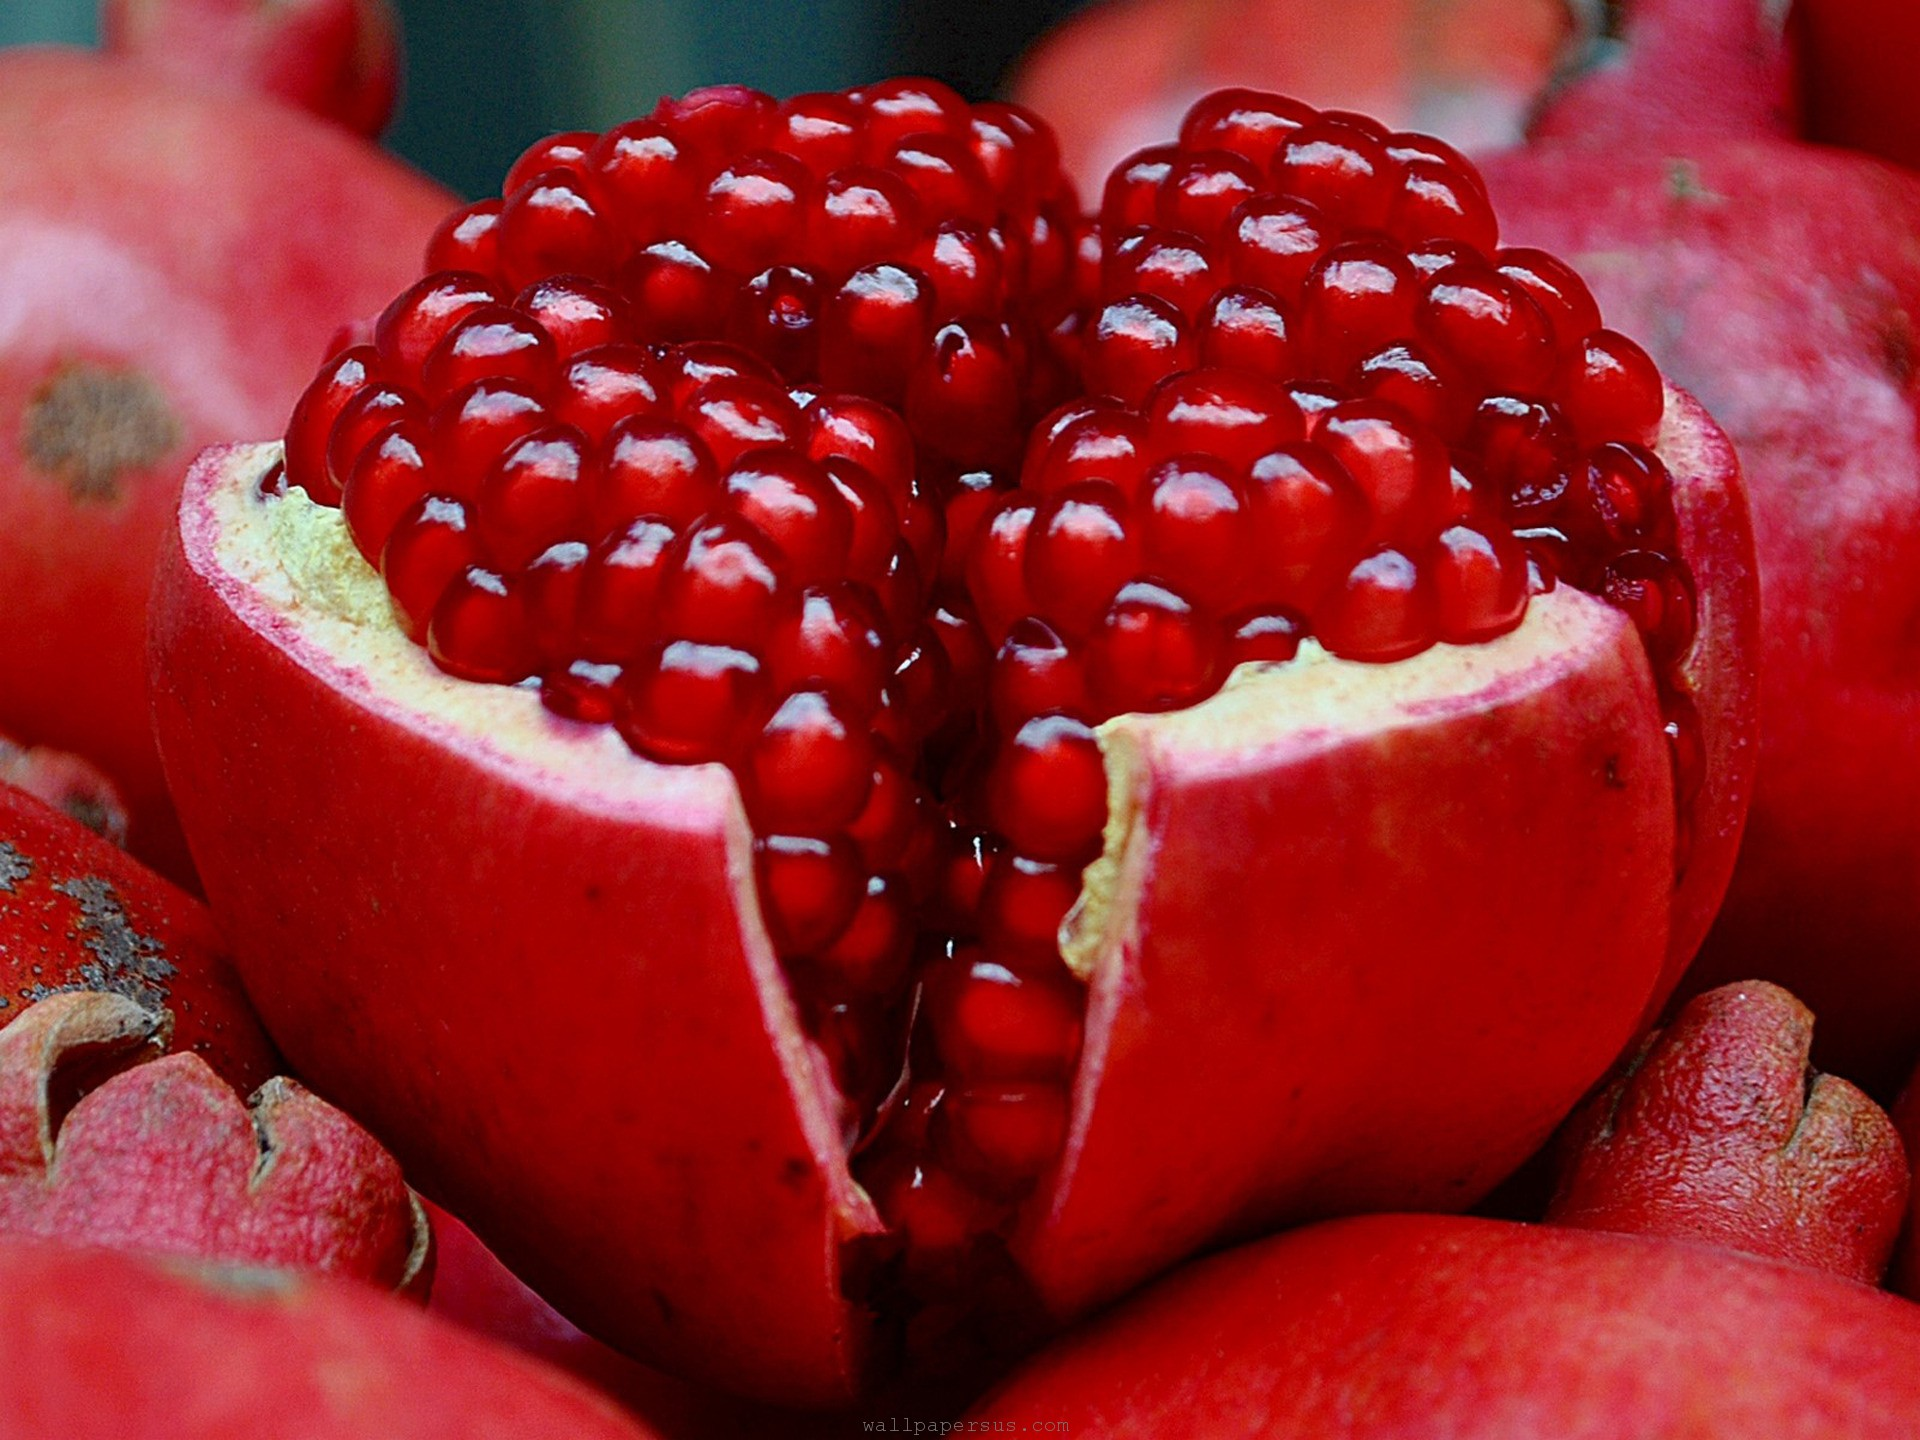 pomegranate-arils-food-fruit-nature-pomegranate-seeds